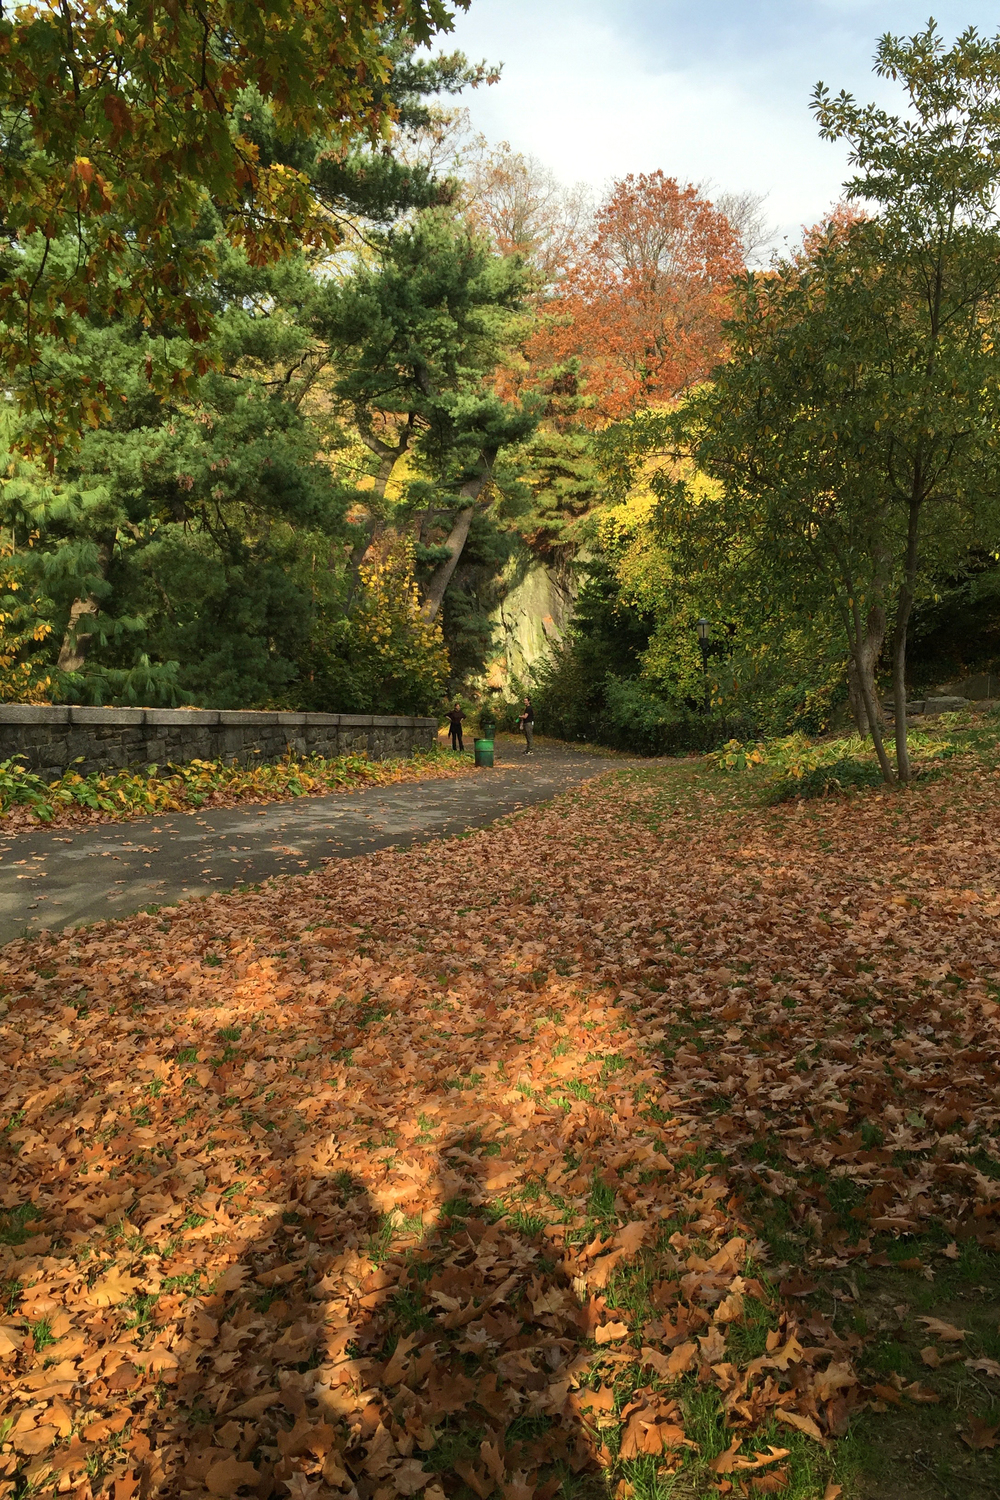 Autumn in Fort Tryon Park - November 6, 2015